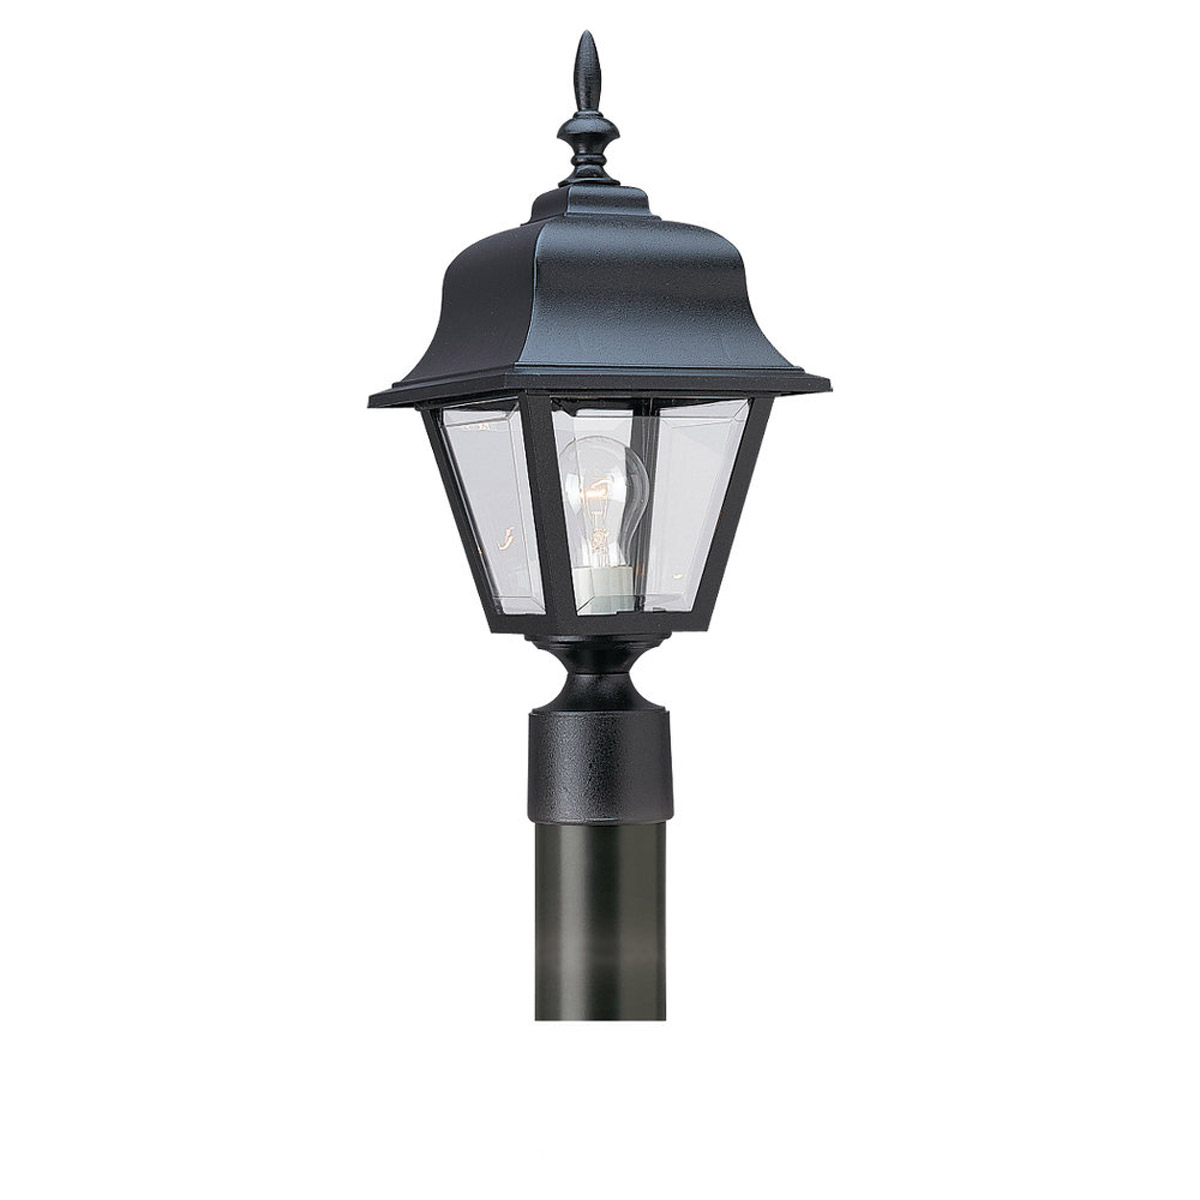 Sea Gull Lighting Polycarb Painted Lanterns 1 Light Outdoor Post Lantern in Black 8255-12 photo